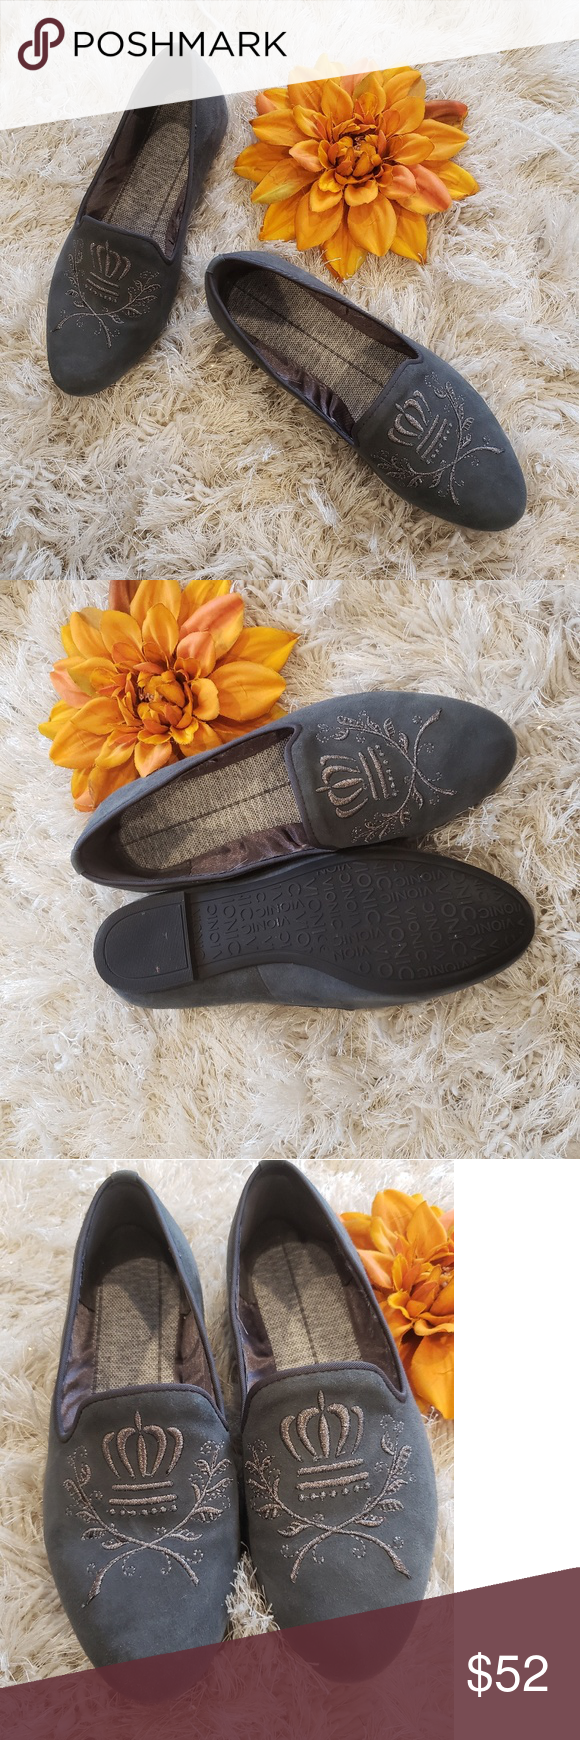 9177edab05e Vionic Snug Romi Flat Shoes The VIONIC Romi slip-on loafer is here to help